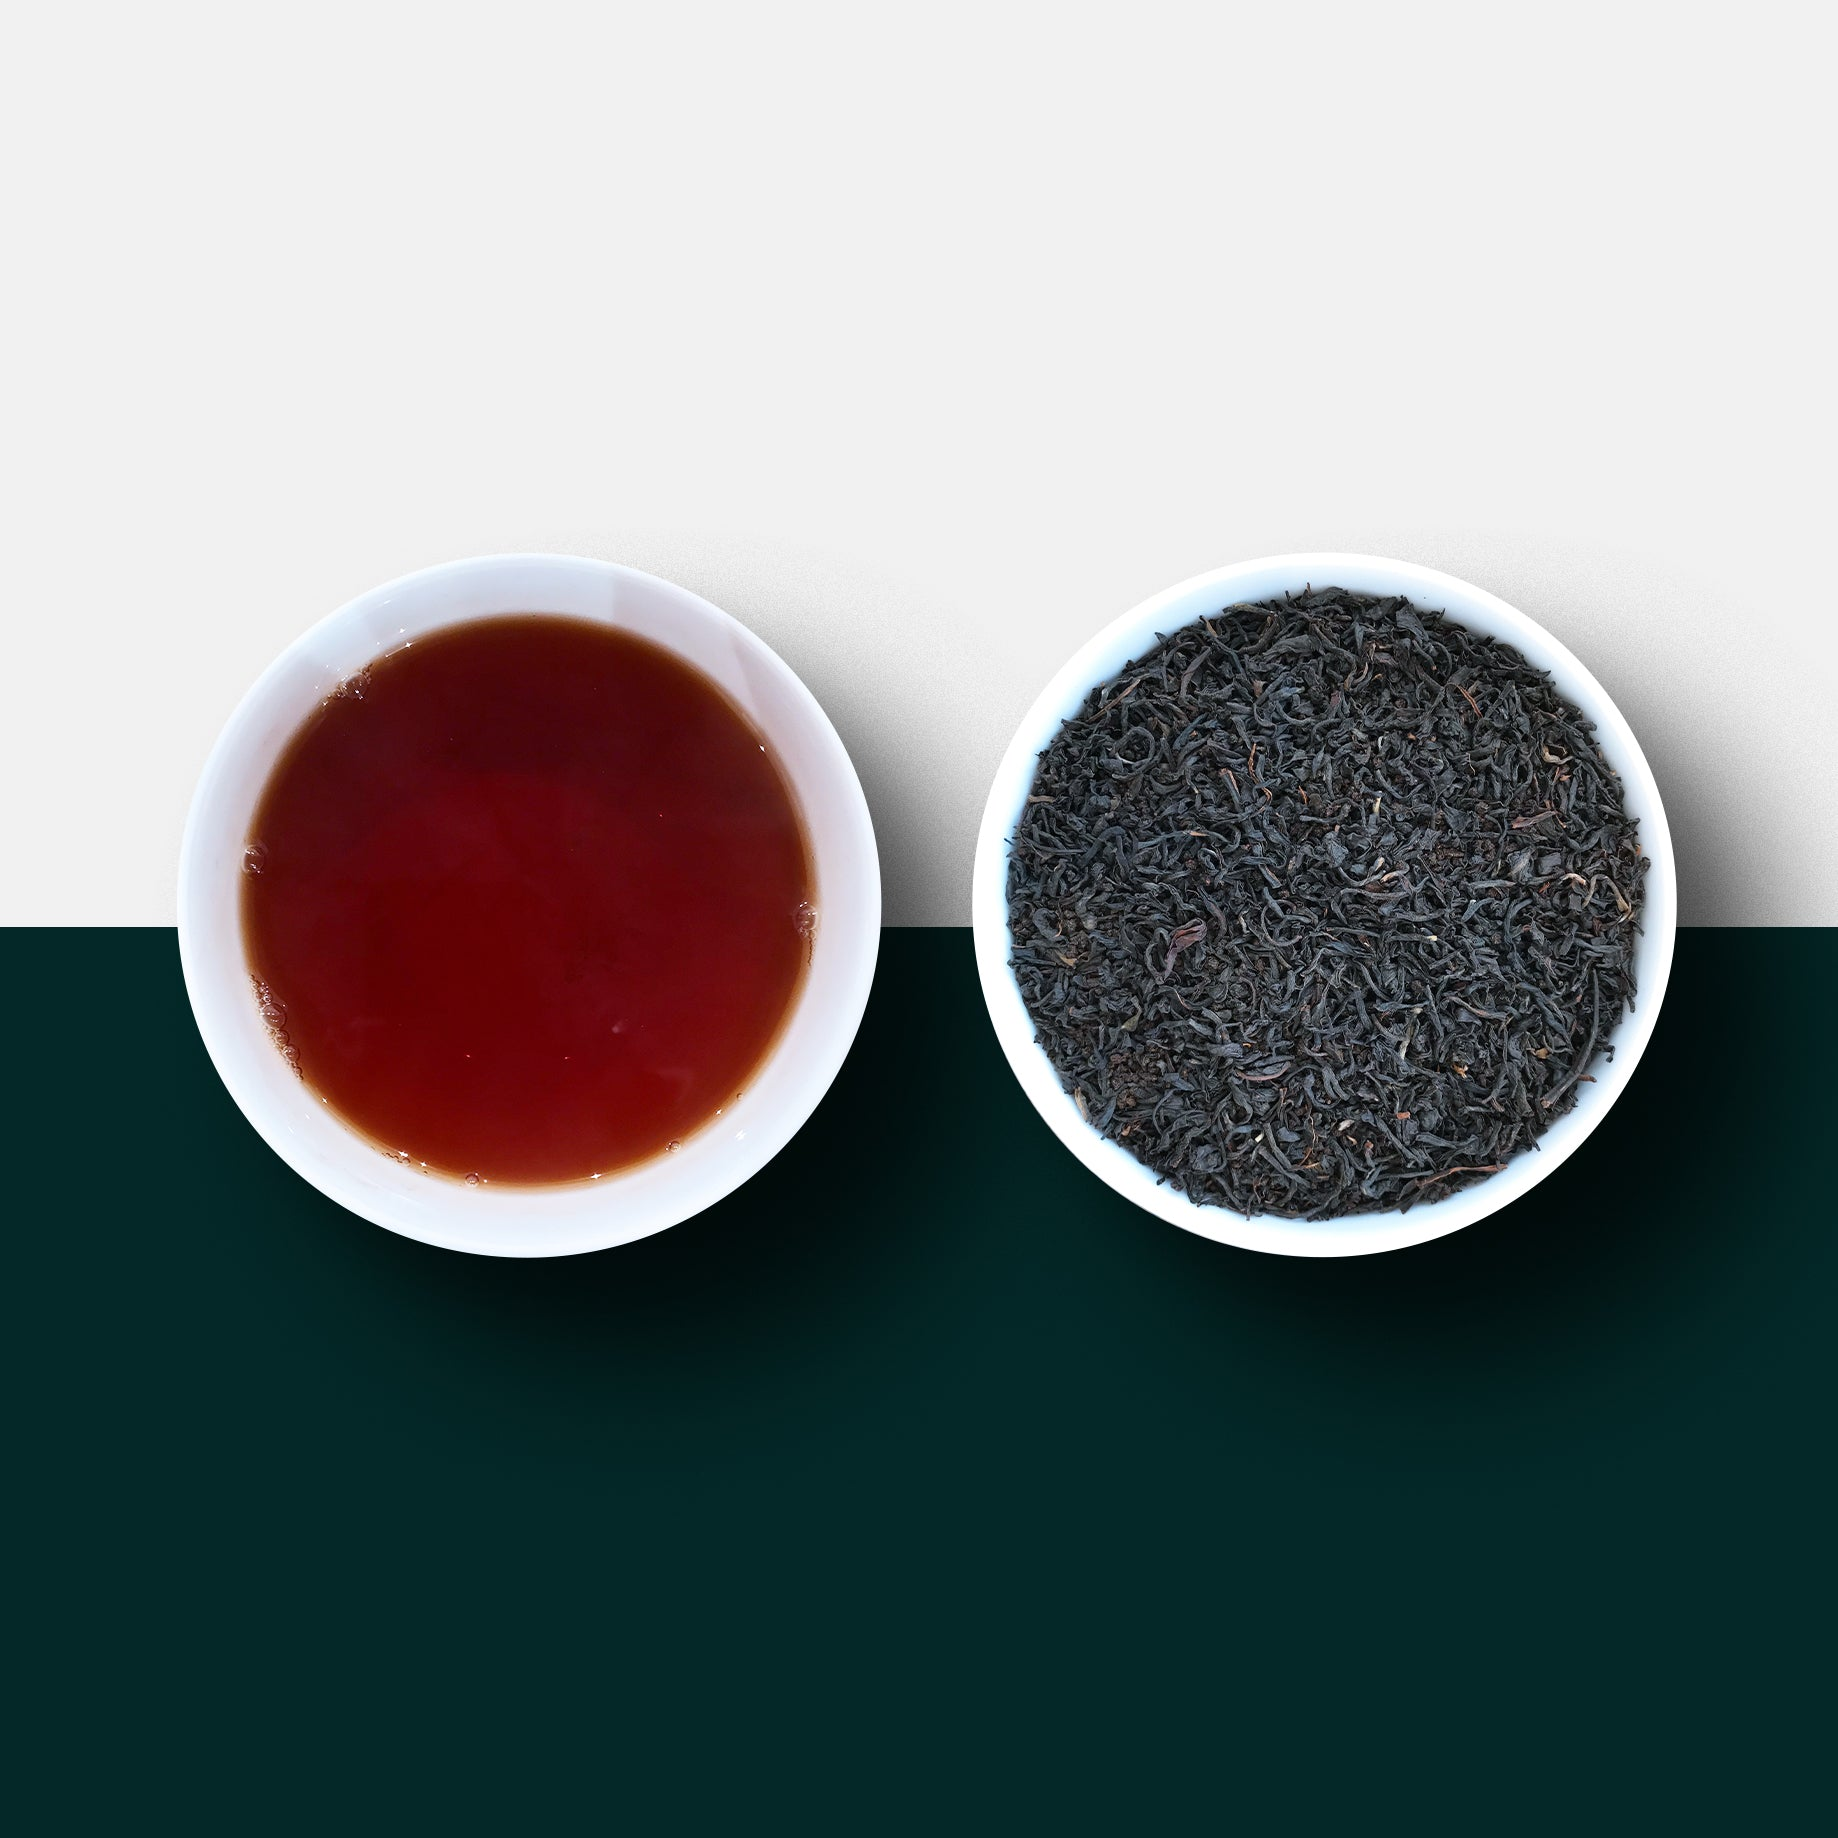 English breakfast tea loose leaf and liquid